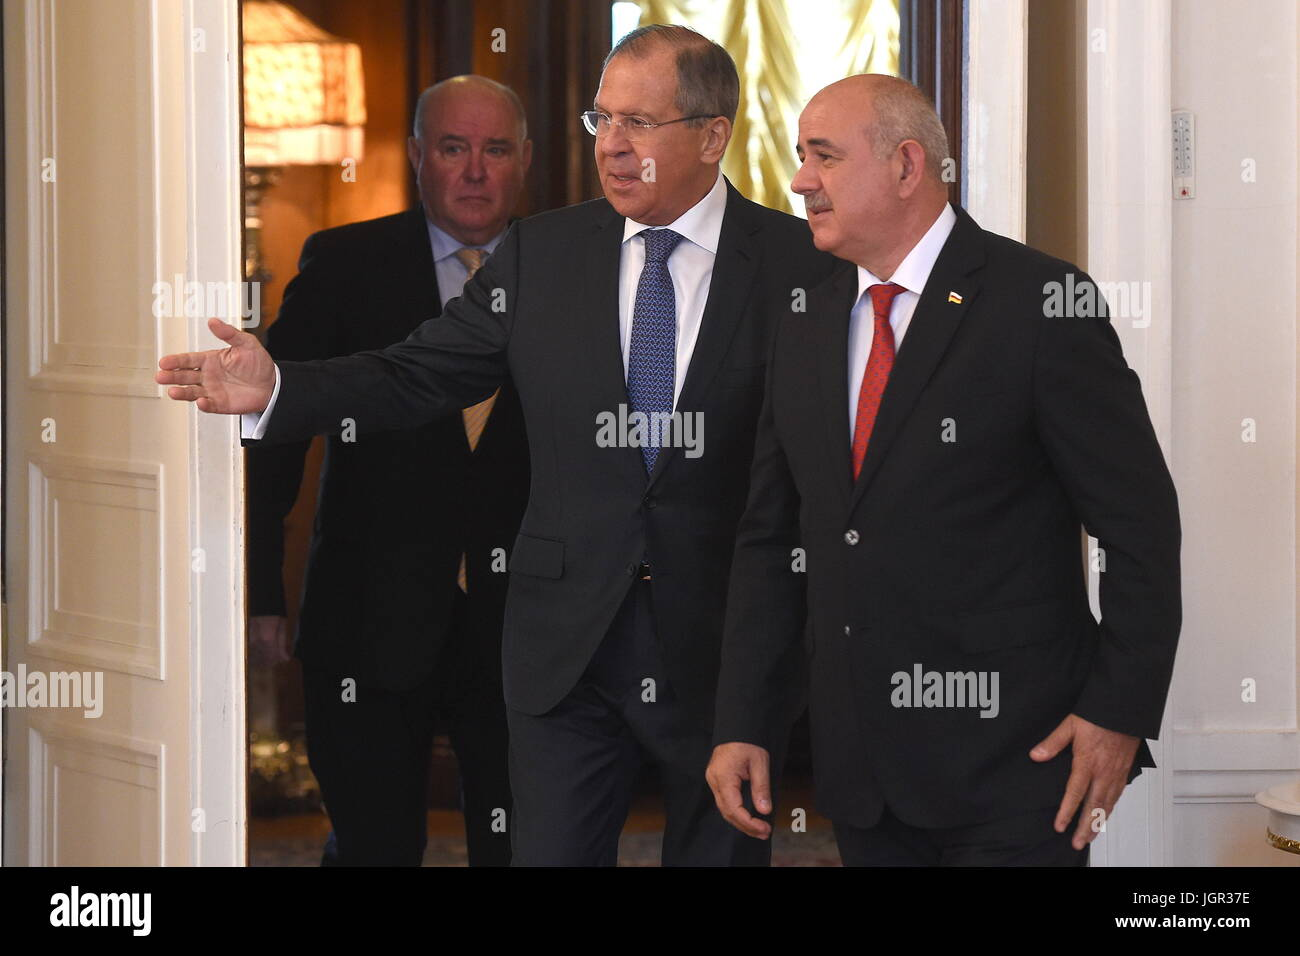 Moscow, Russia. 10th July, 2017. Russia's minister of foreign affairs Sergei Lavrov (C) and South Ossetia's - Stock Image